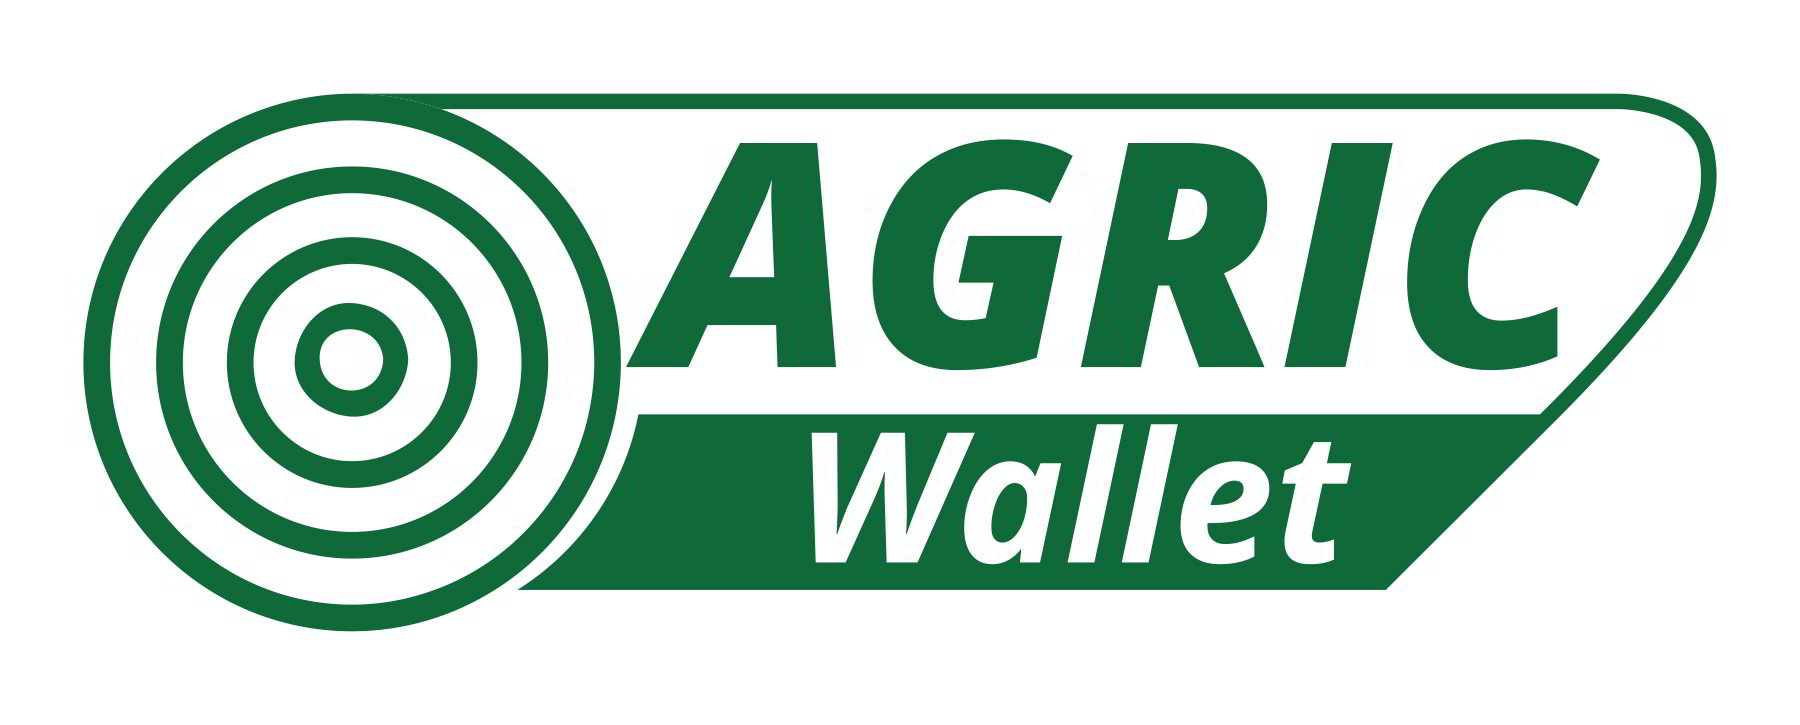 Agric Wallet financing smallholder farmers to build resilient household income